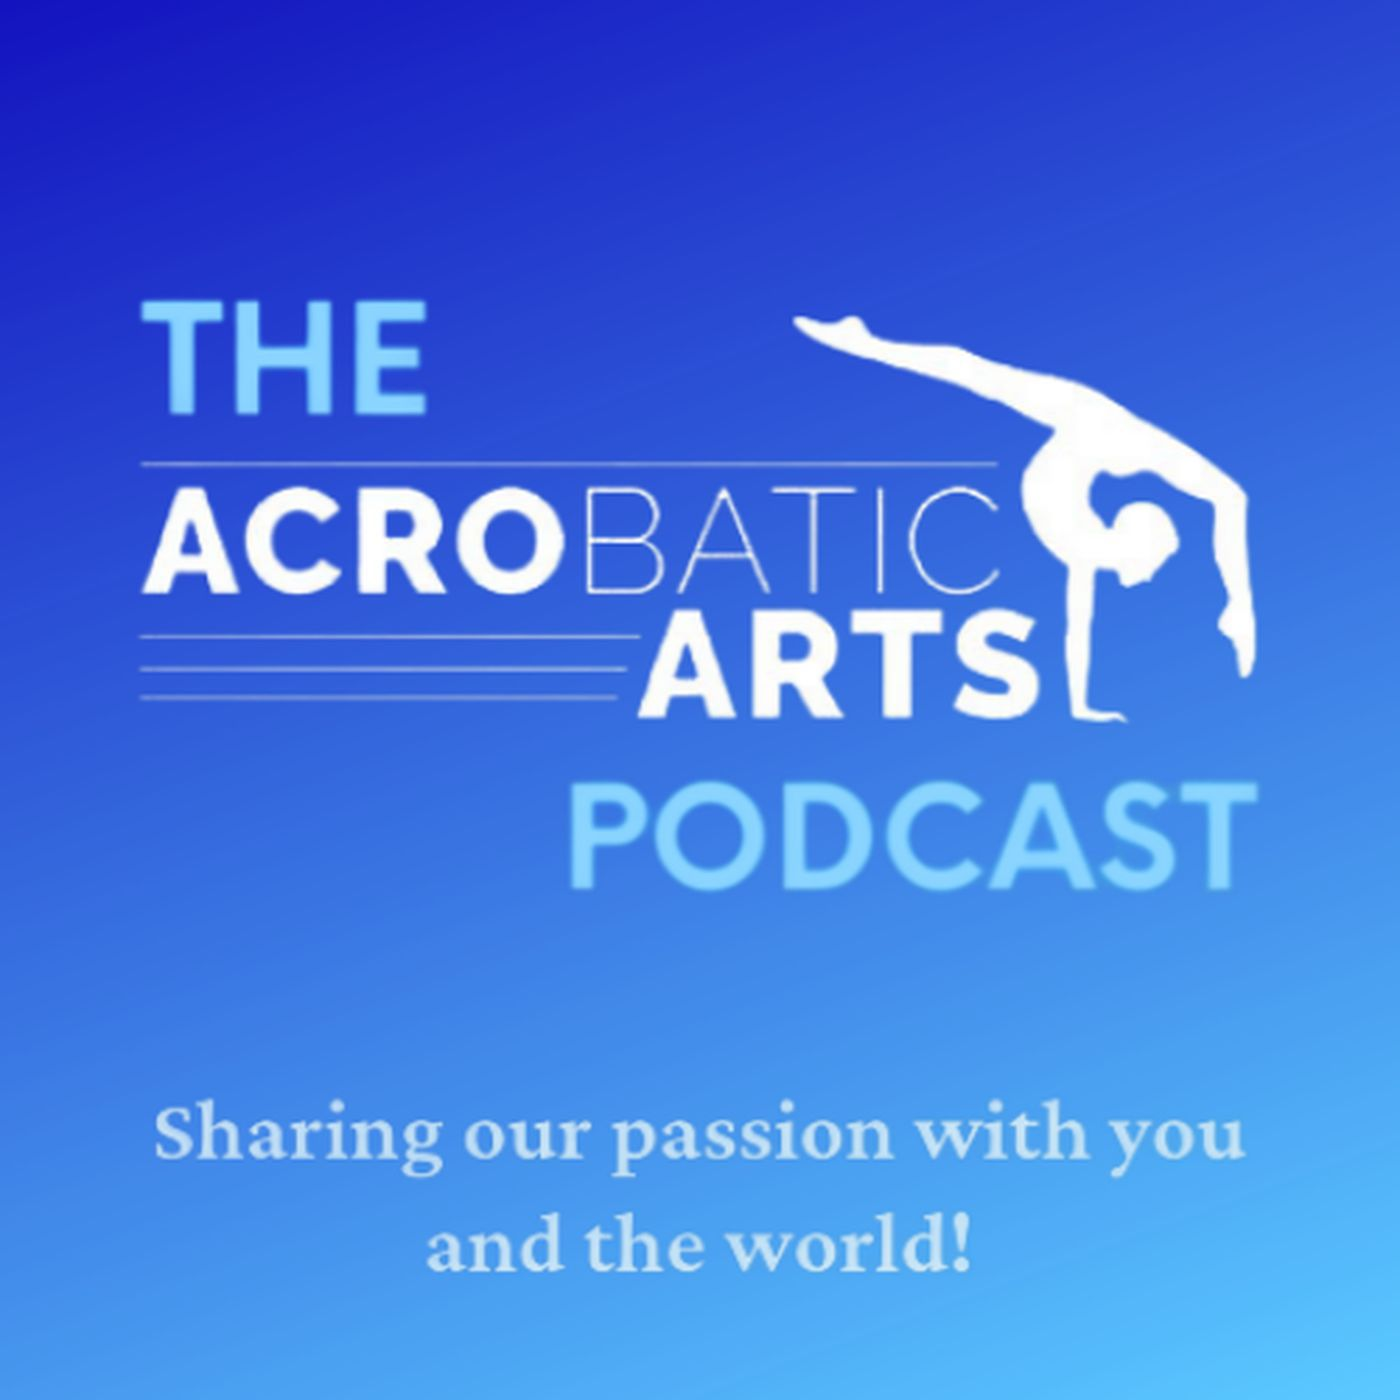 The Acrobatic Arts Podcast